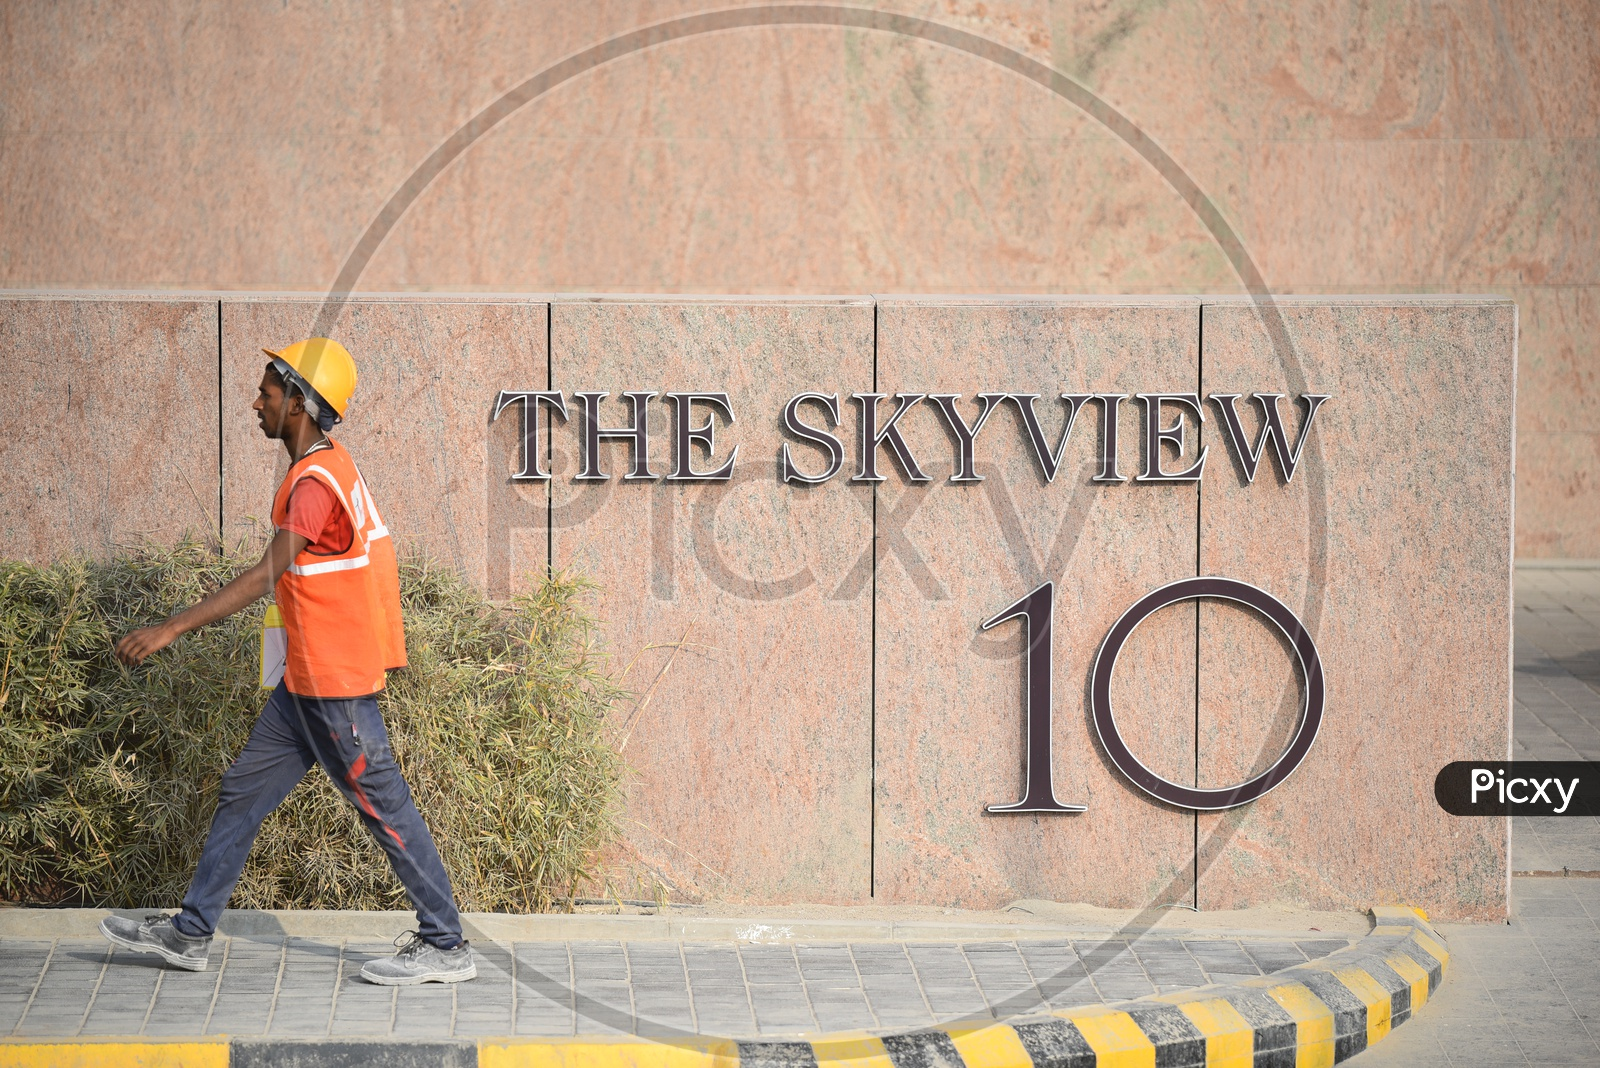 A Construction Worker walking on Footpath at THE SKYVIEW 10, Hyderabad